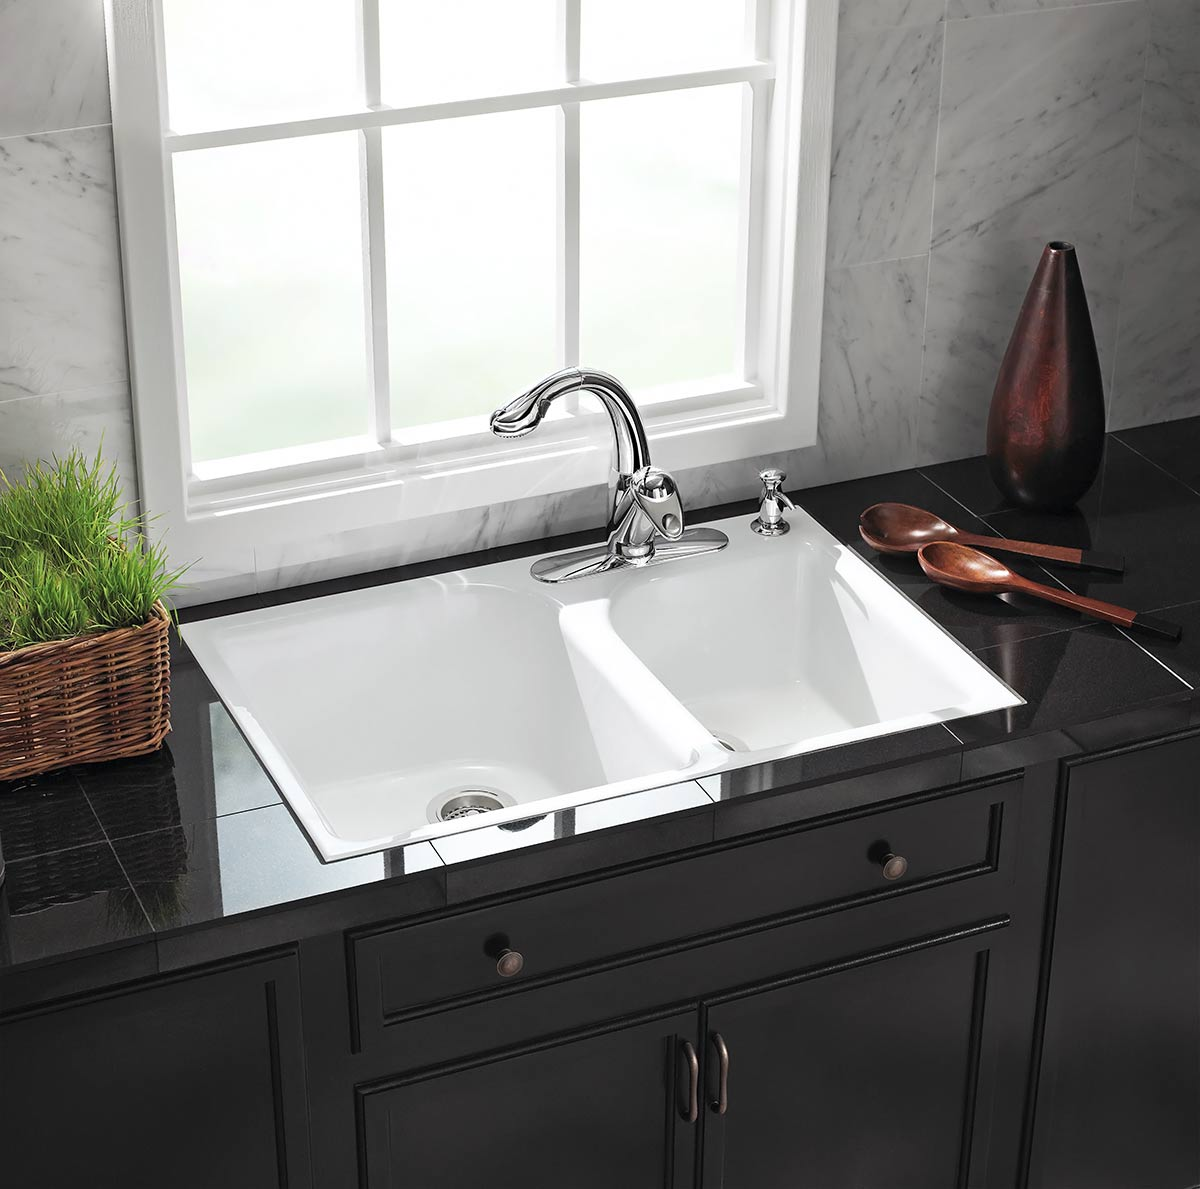 plumbing fixtures for the kitchen kohler kitchen sinks Kohler cast iron tile in kitchen sink